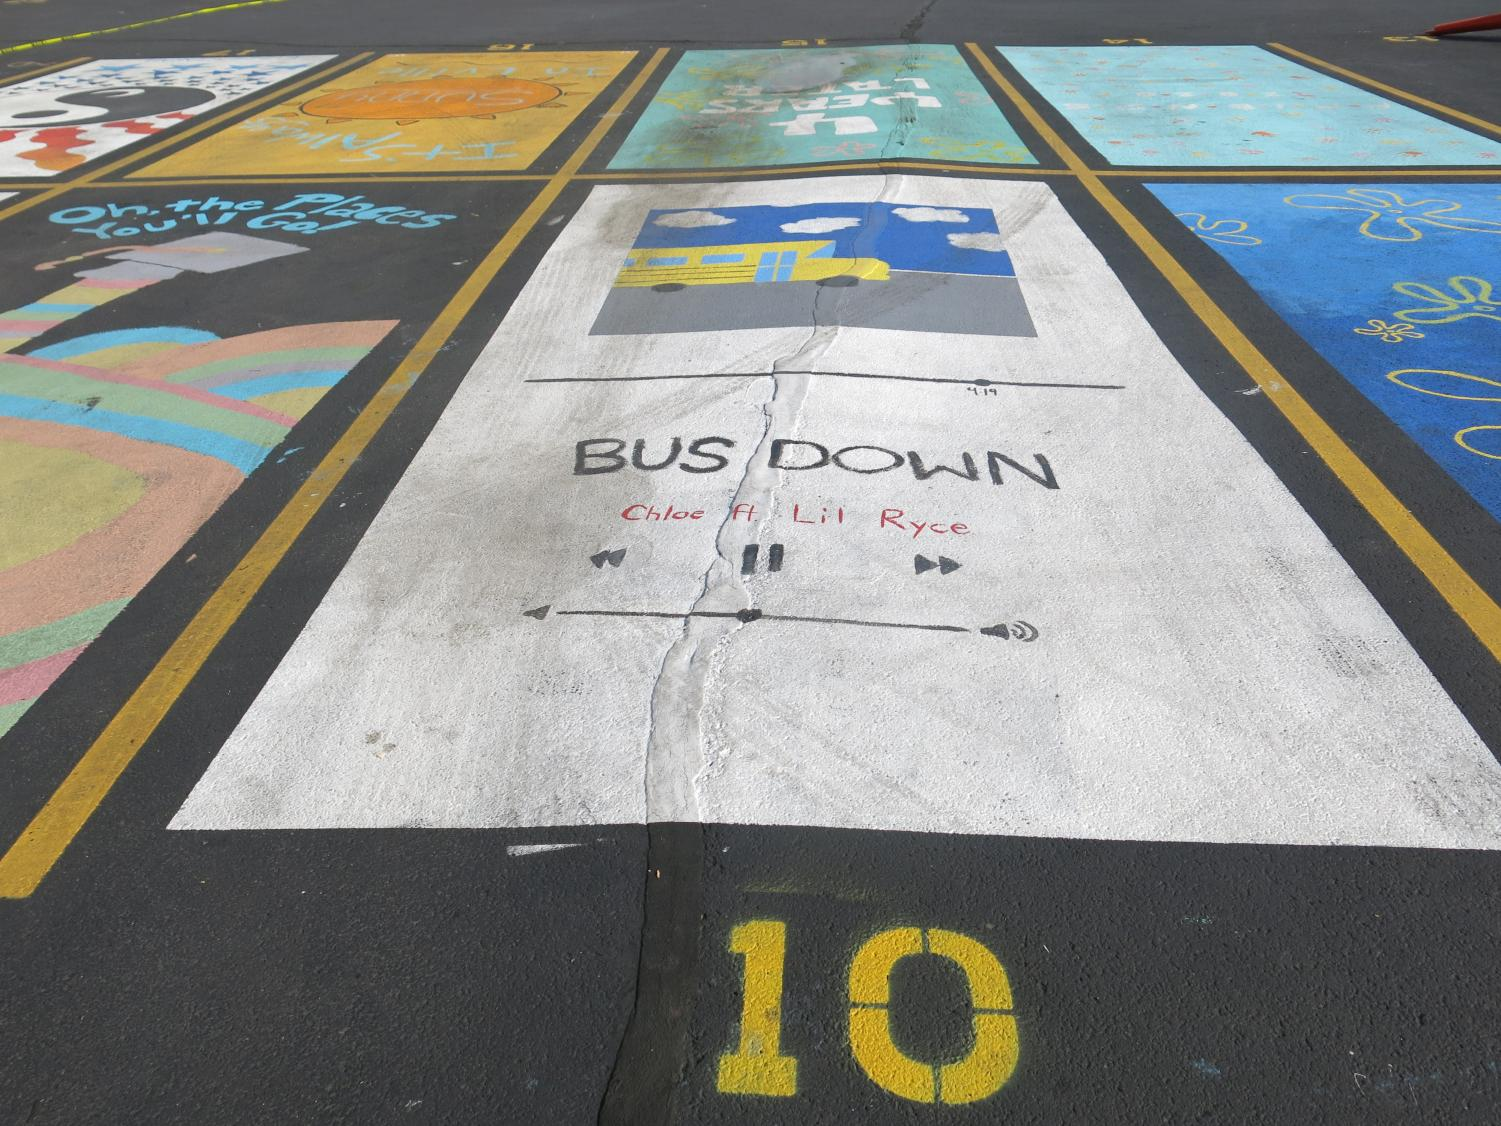 Seniors paint their carpool parking spaces – Drops of Ink